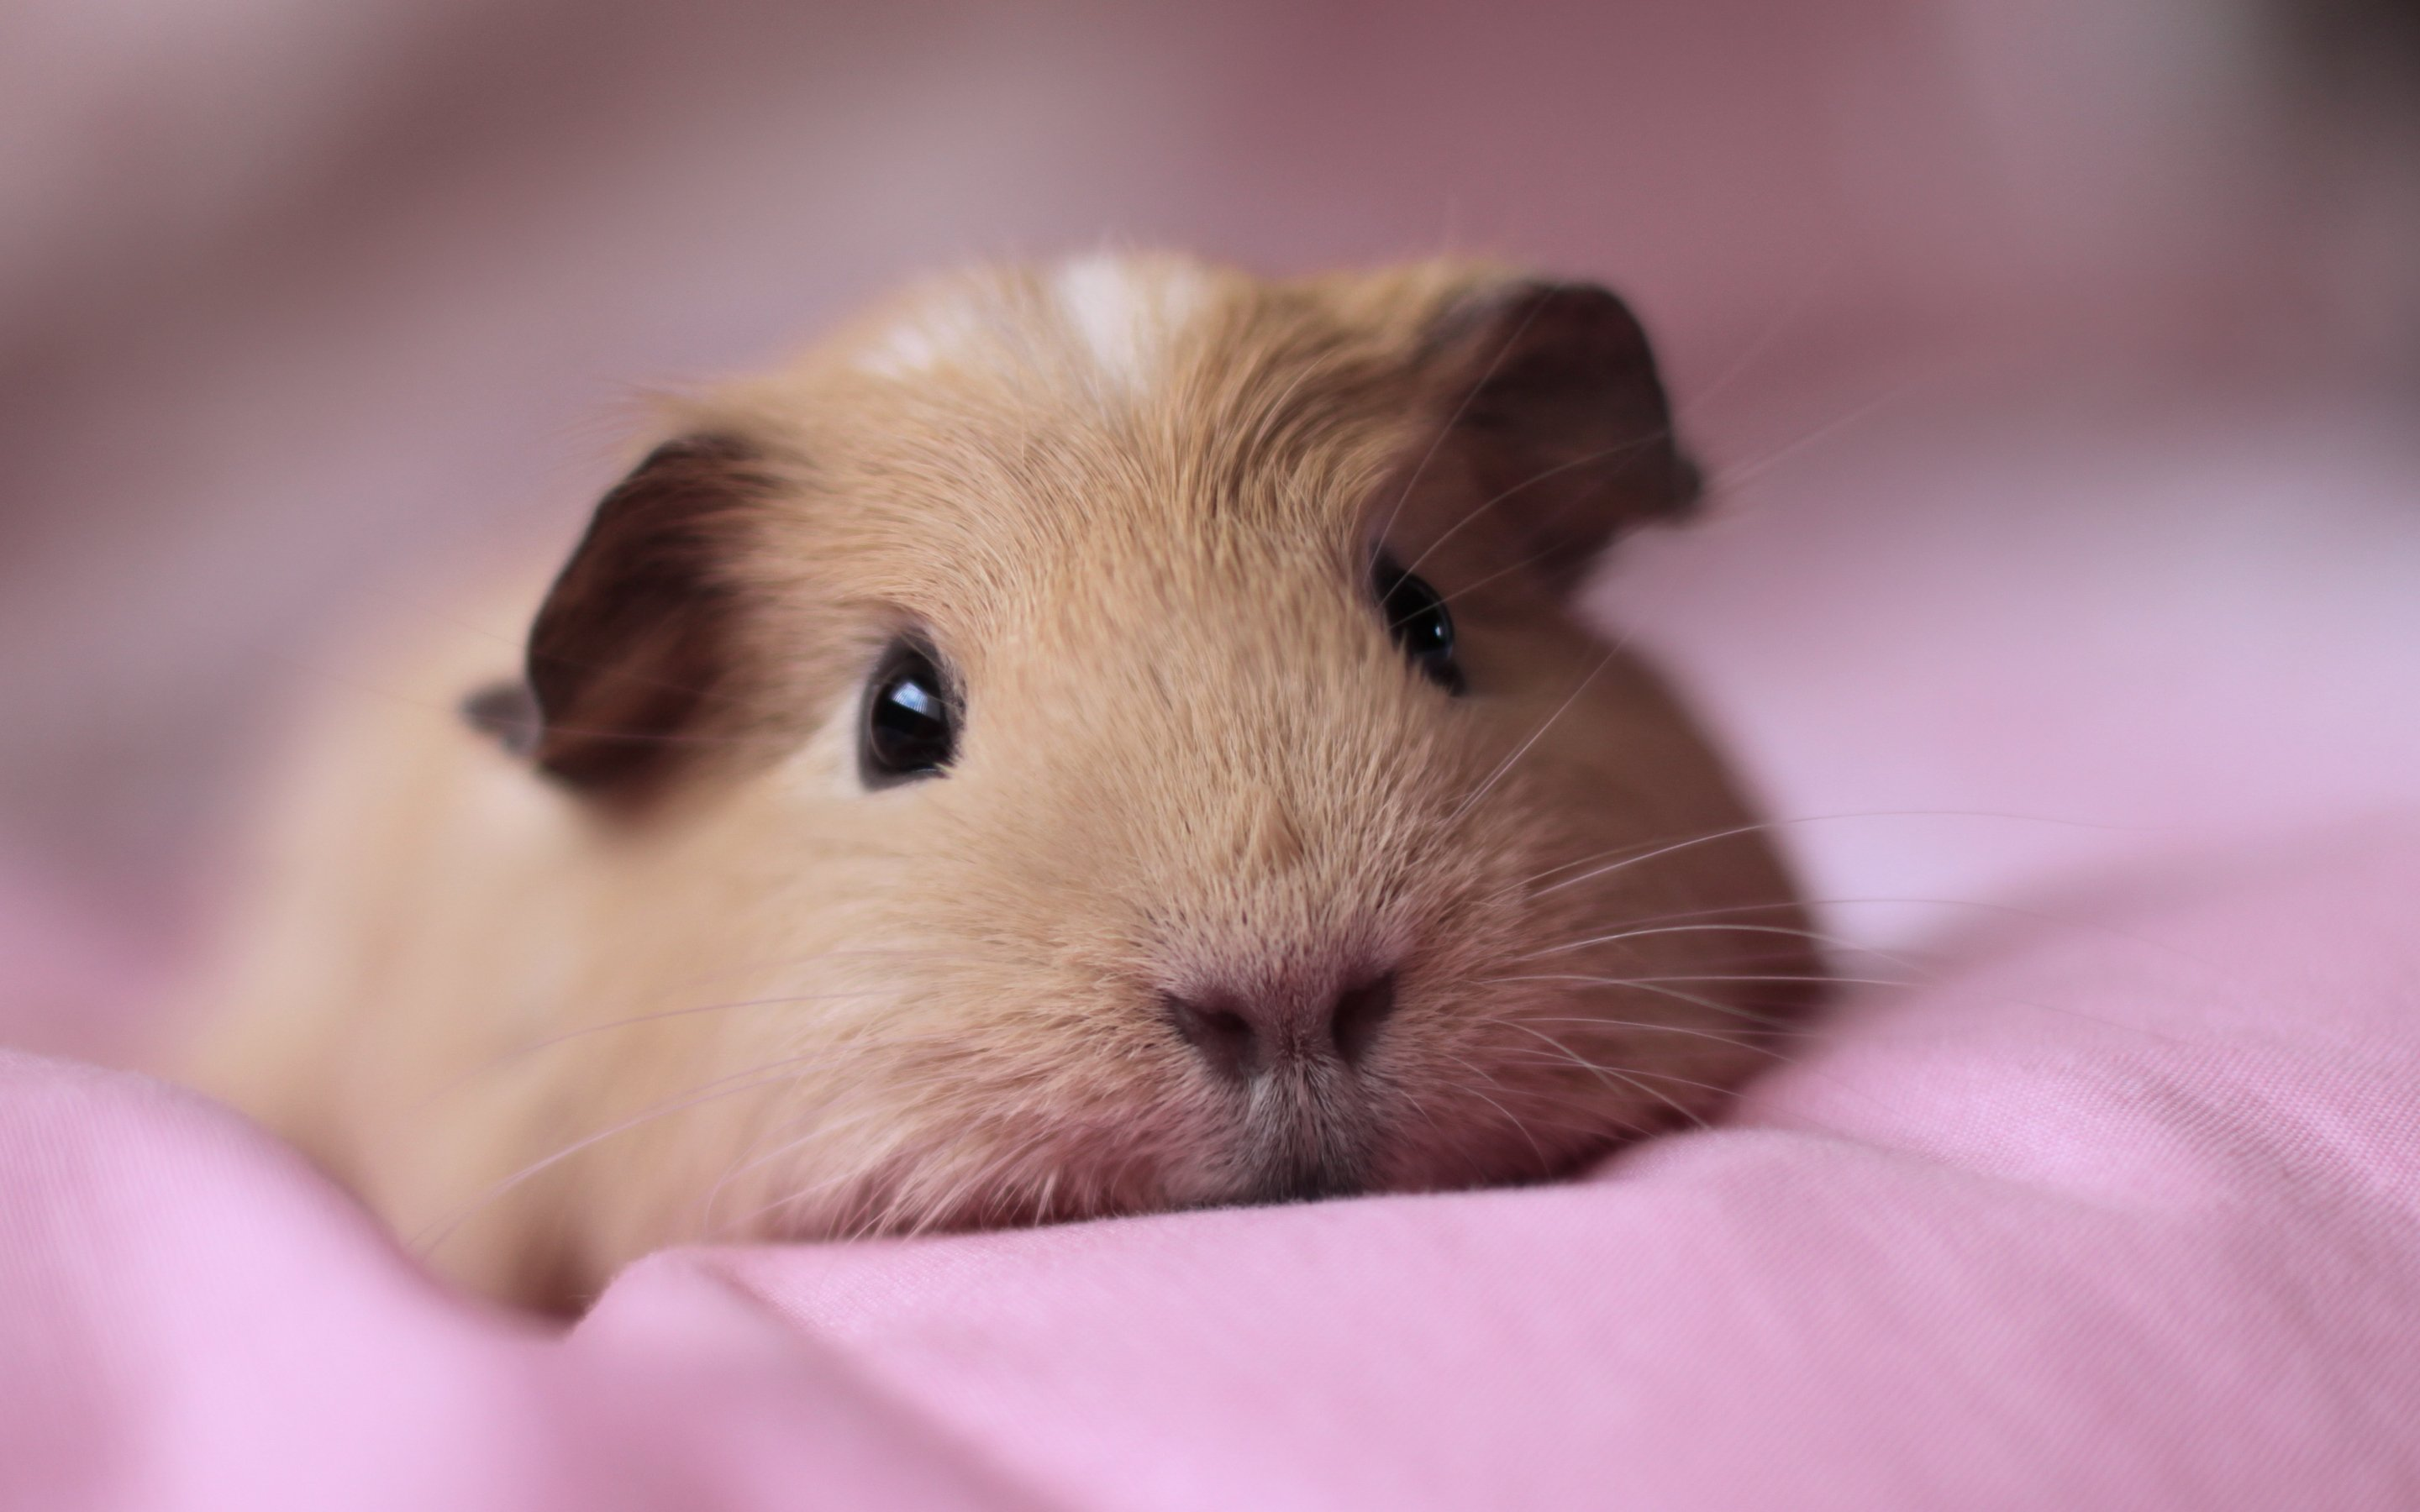 Adorable Guinea Pigs are here at Petland Kennesaw!